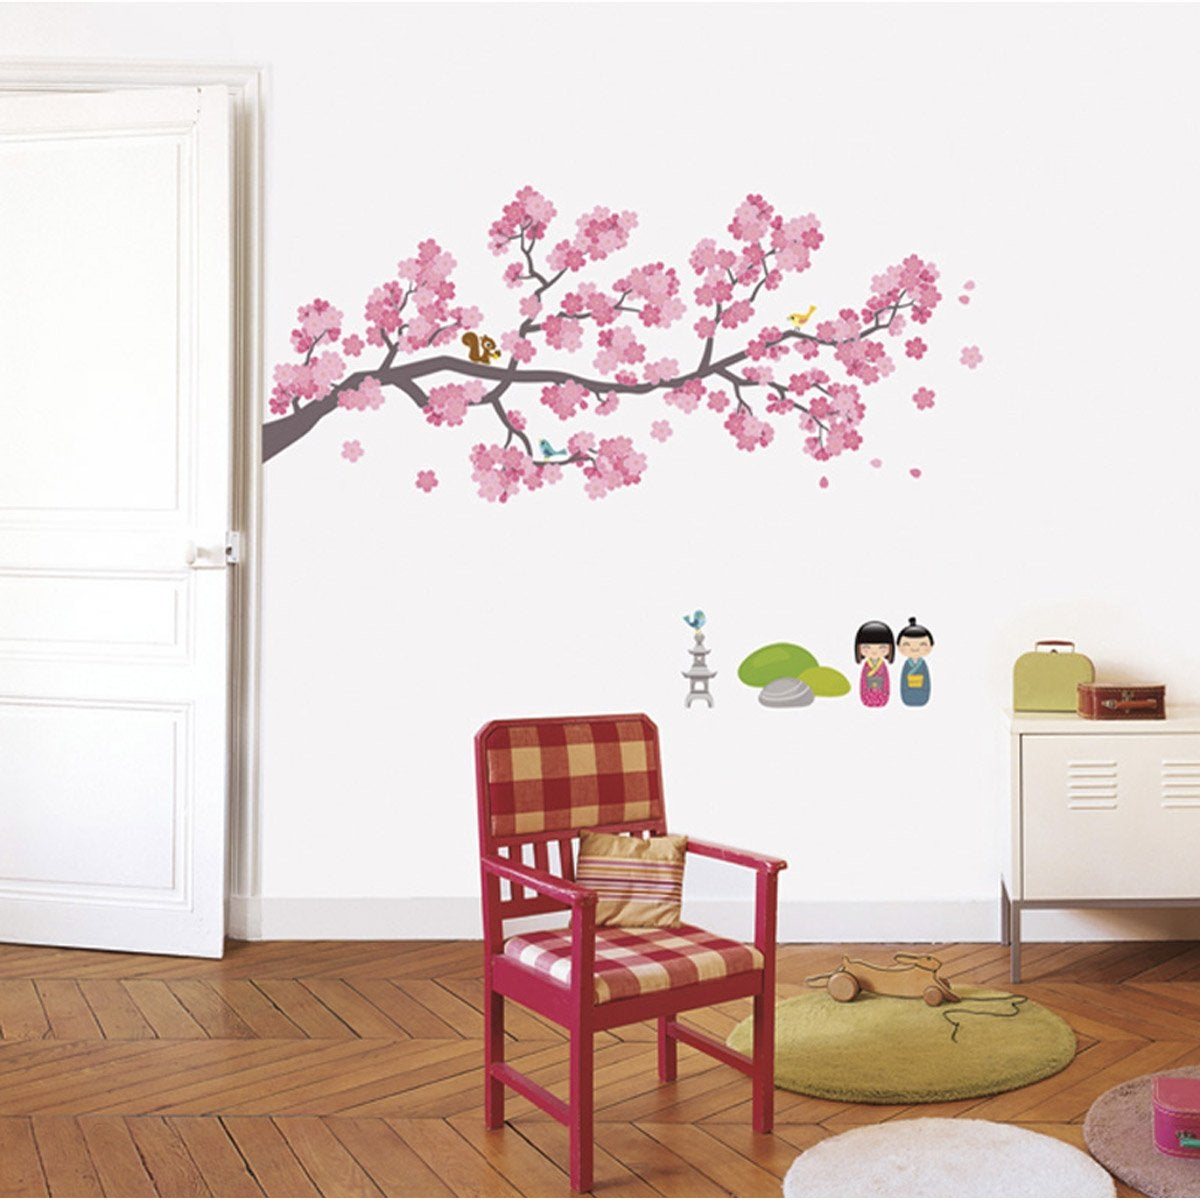 Sticker branches cerisiers 49 cm x 69 cm leroy merlin - Leroy merlin stickers ...